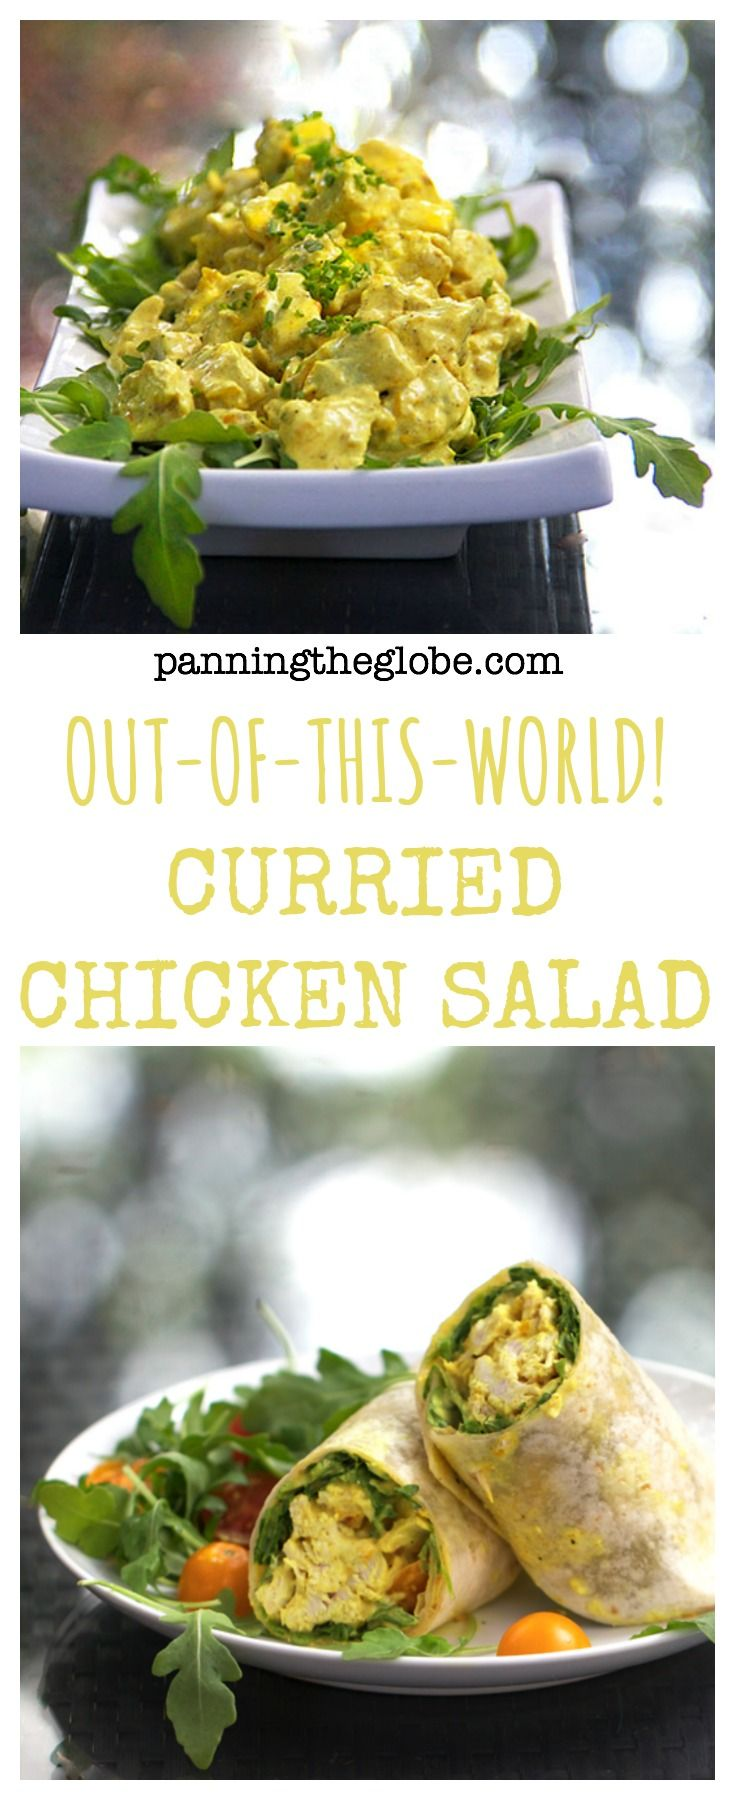 Save this recipe for your leftover turkey! It's truly the best chicken/turkey salad ever! #Thanksgiving #Turkey